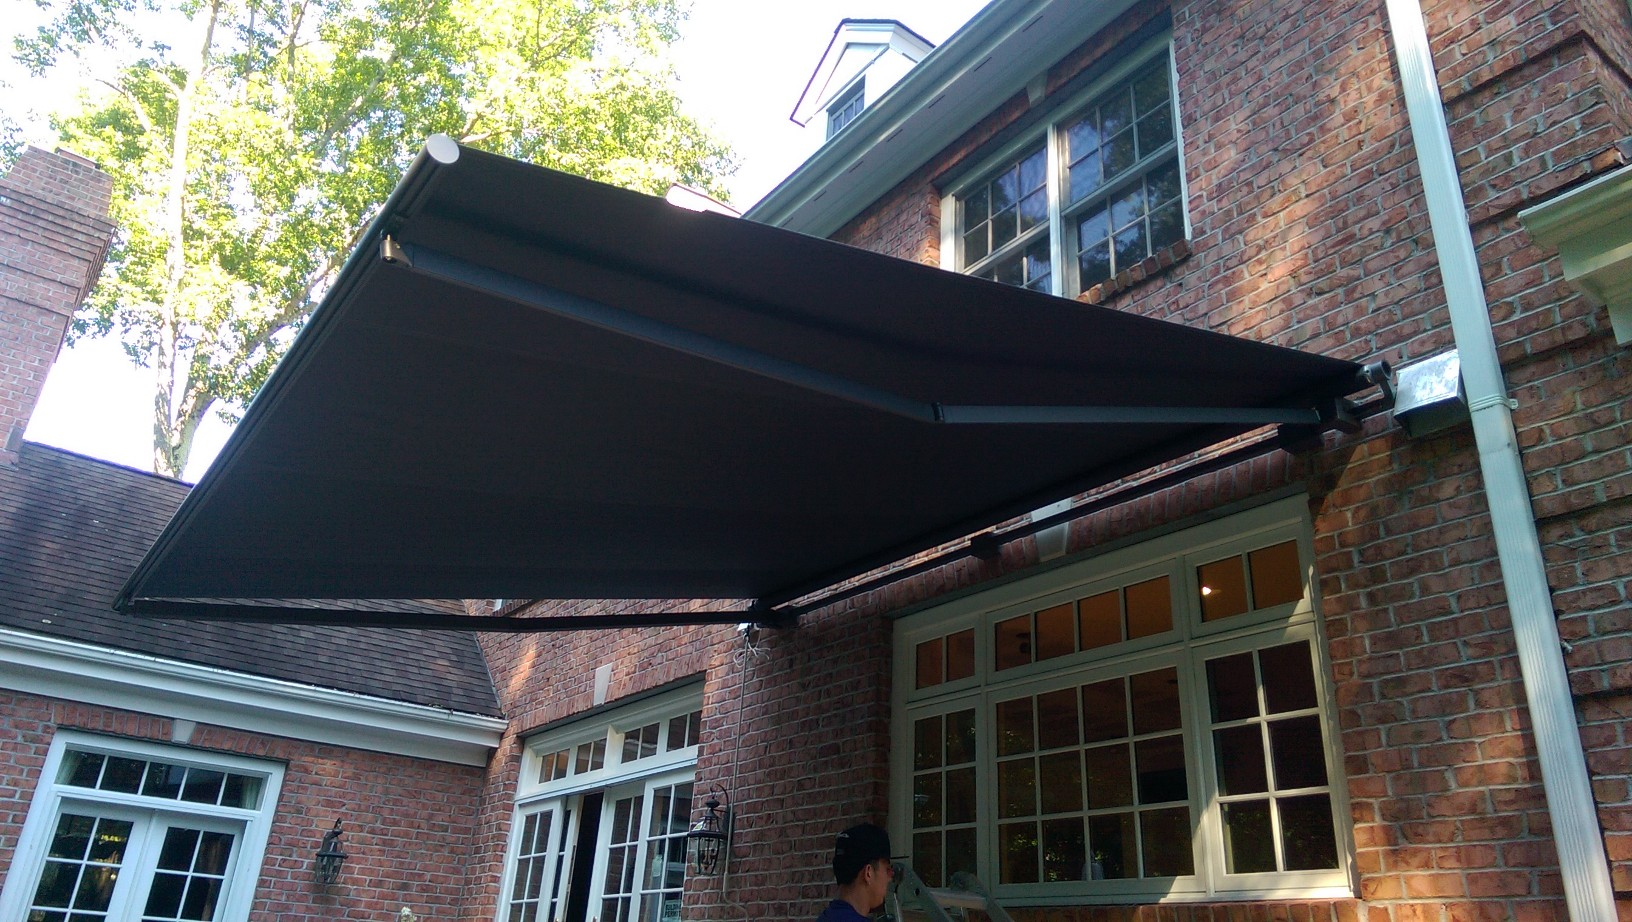 New Retractable Awning Installed By Dean And The Rest Of Haven Crew Now These Lucky Customers Can Keep Their Company Cool Dry While